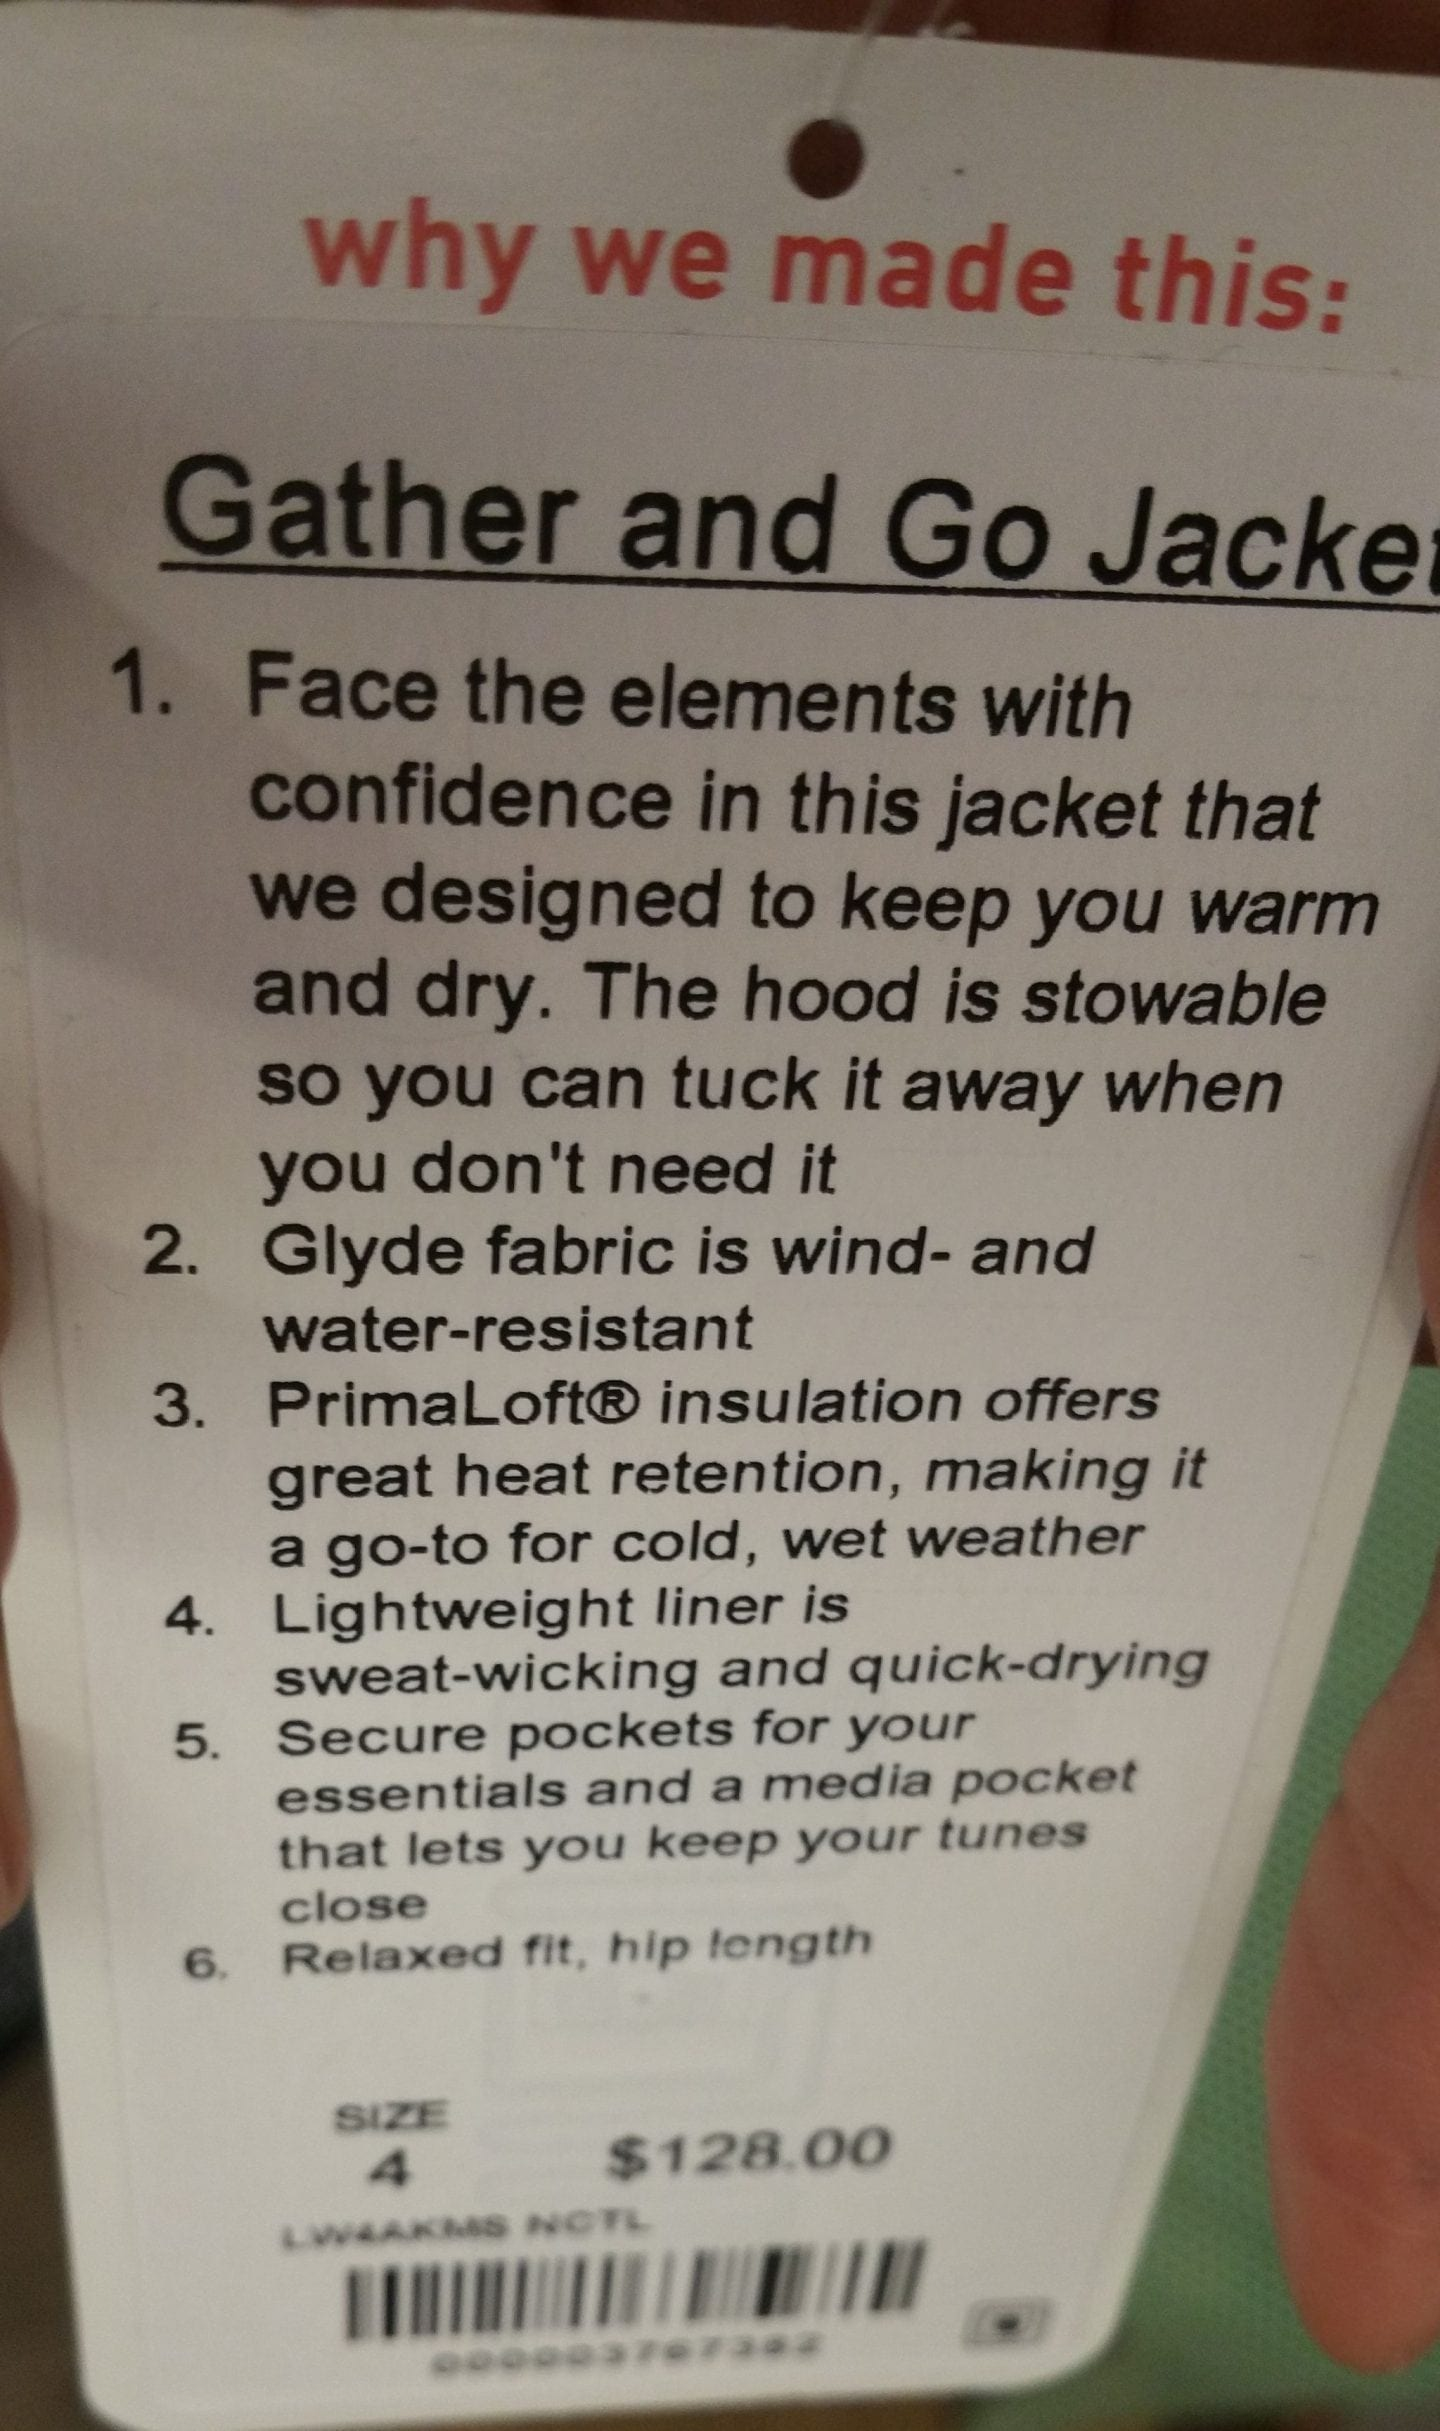 Gather & Go Jacket